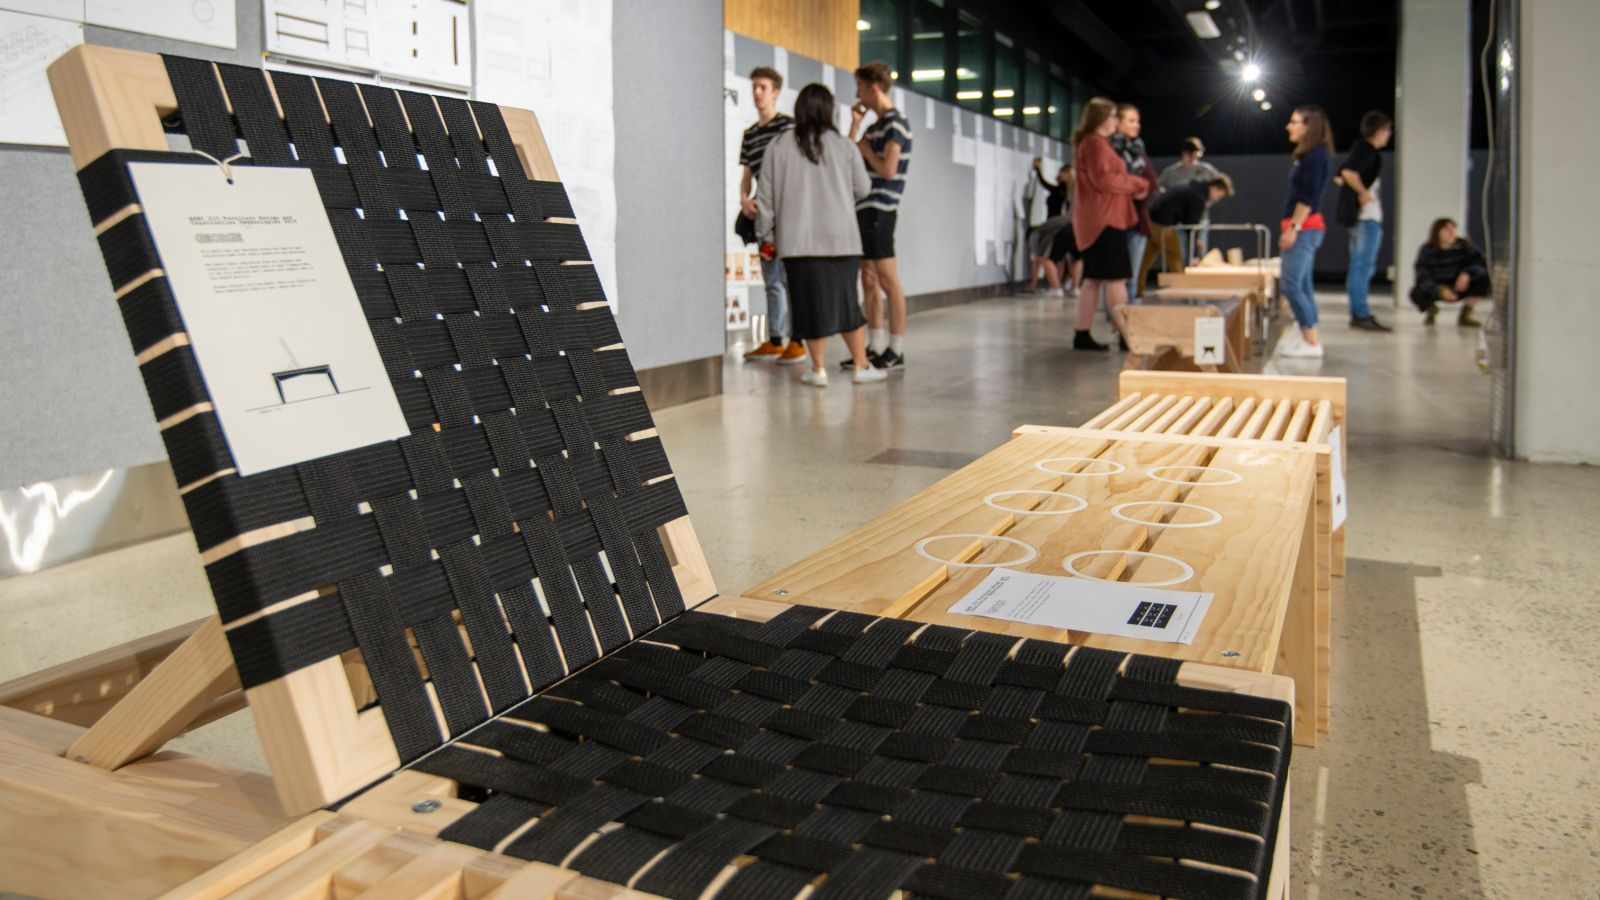 wooden bench with backrest and woven black fabric seat at front of exhibition of wooden furniture